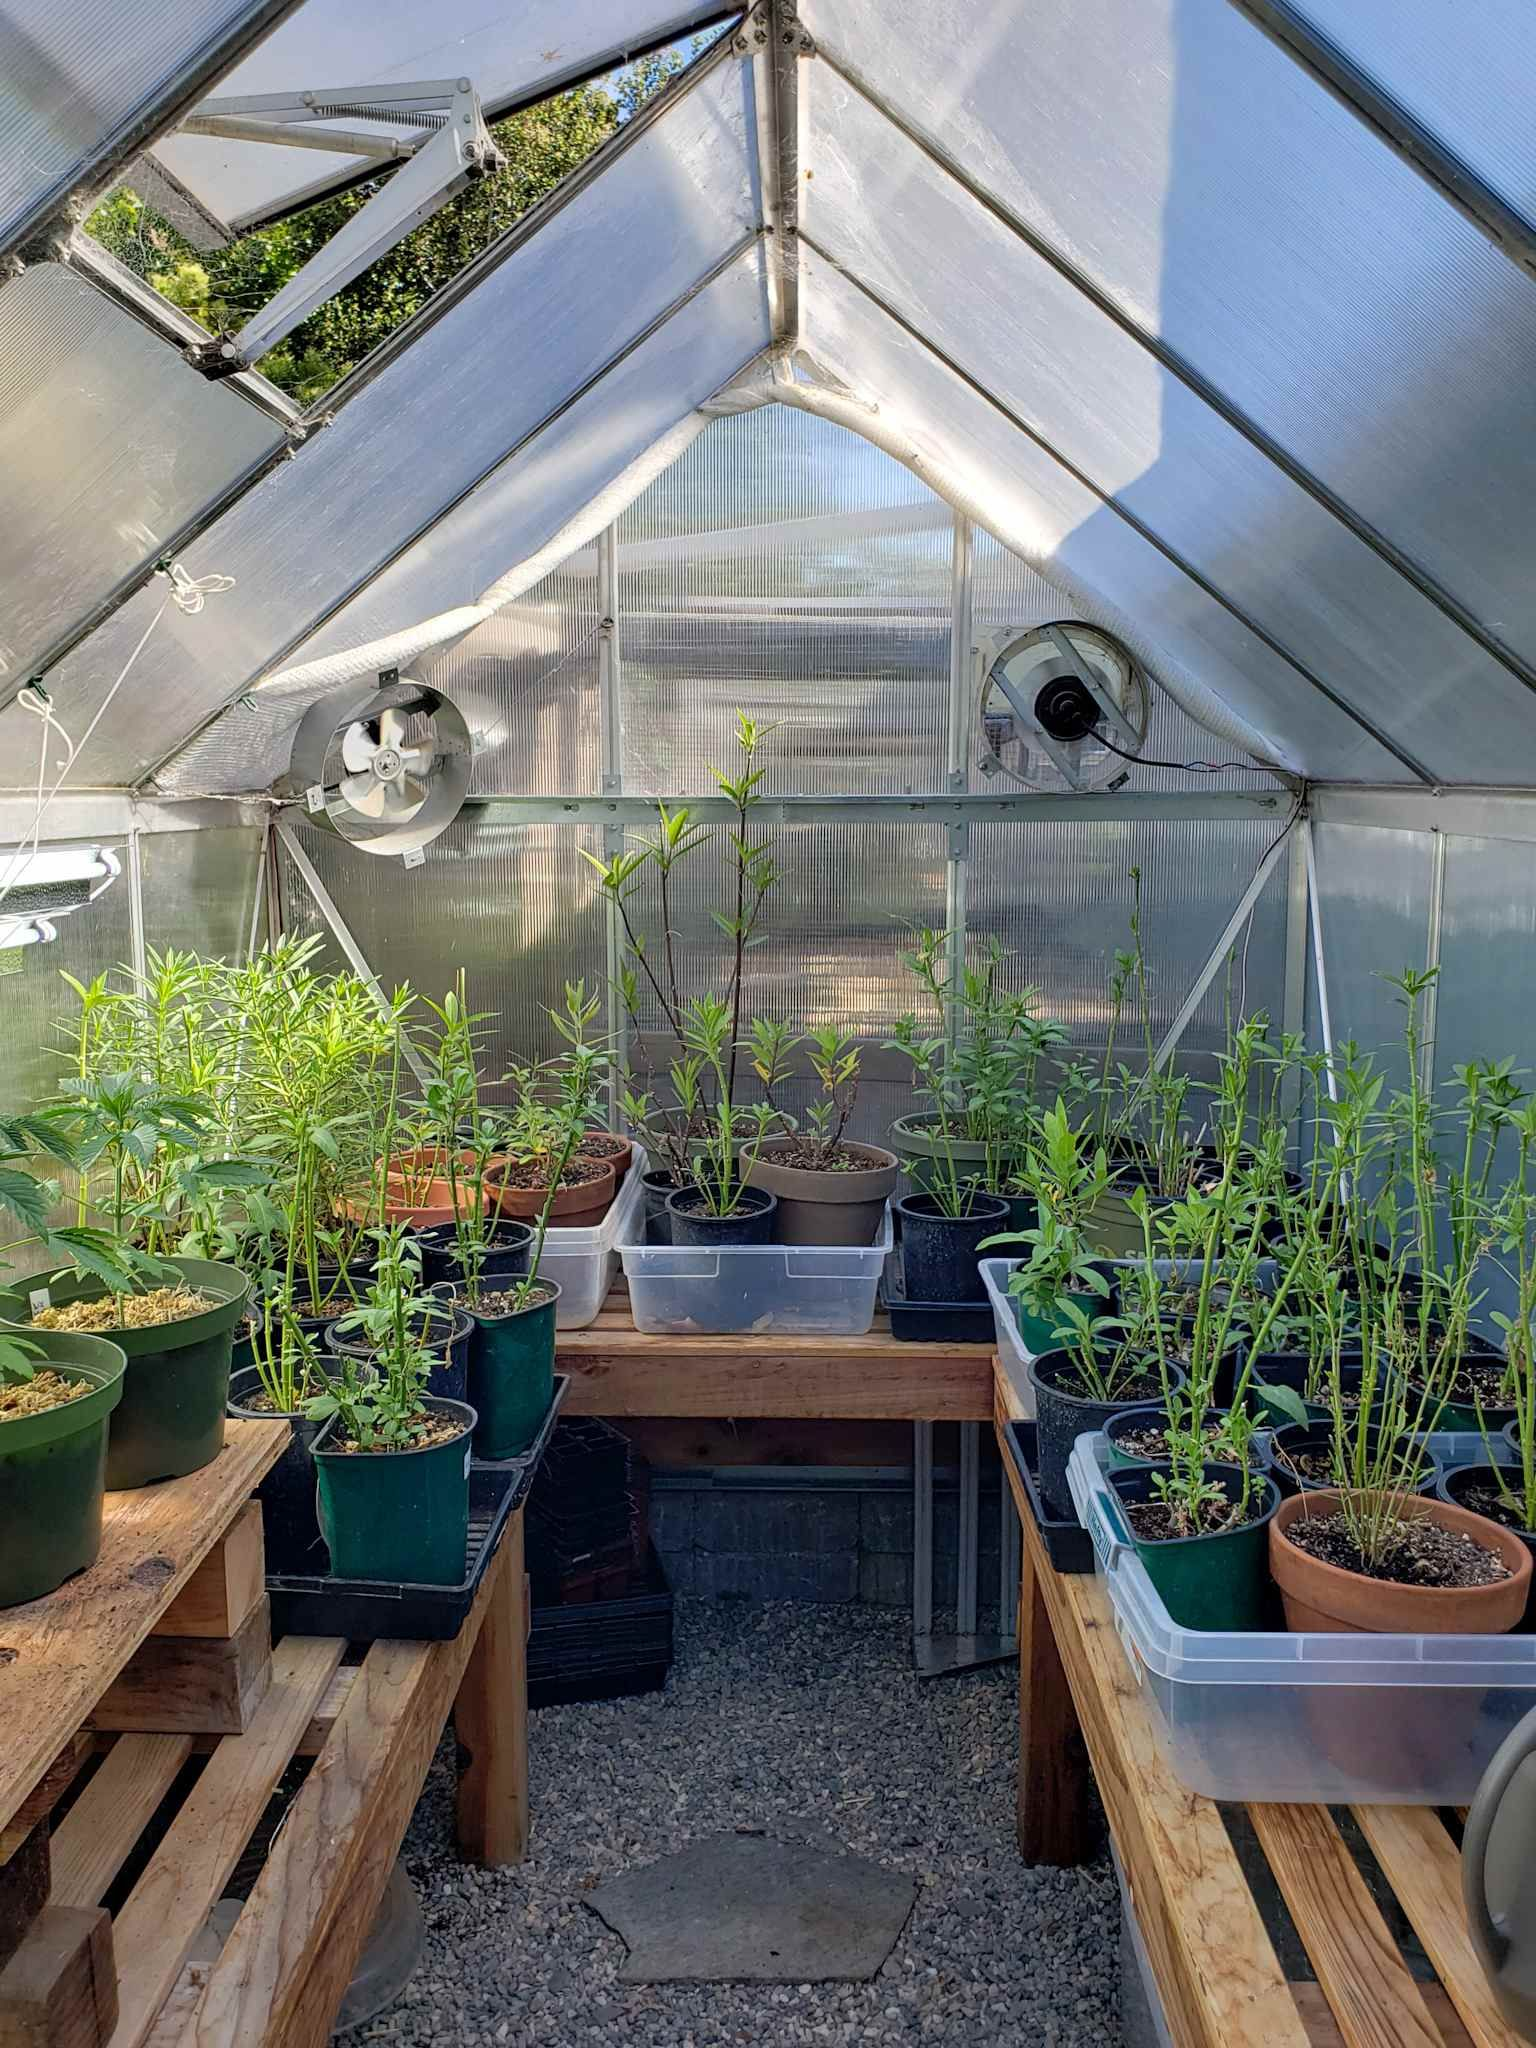 A Beginner S Guide To Using A Hobby Greenhouse Homestead And Chill Hobby Greenhouse Backyard Greenhouse Greenhouse Backyard greenhouse for beginners